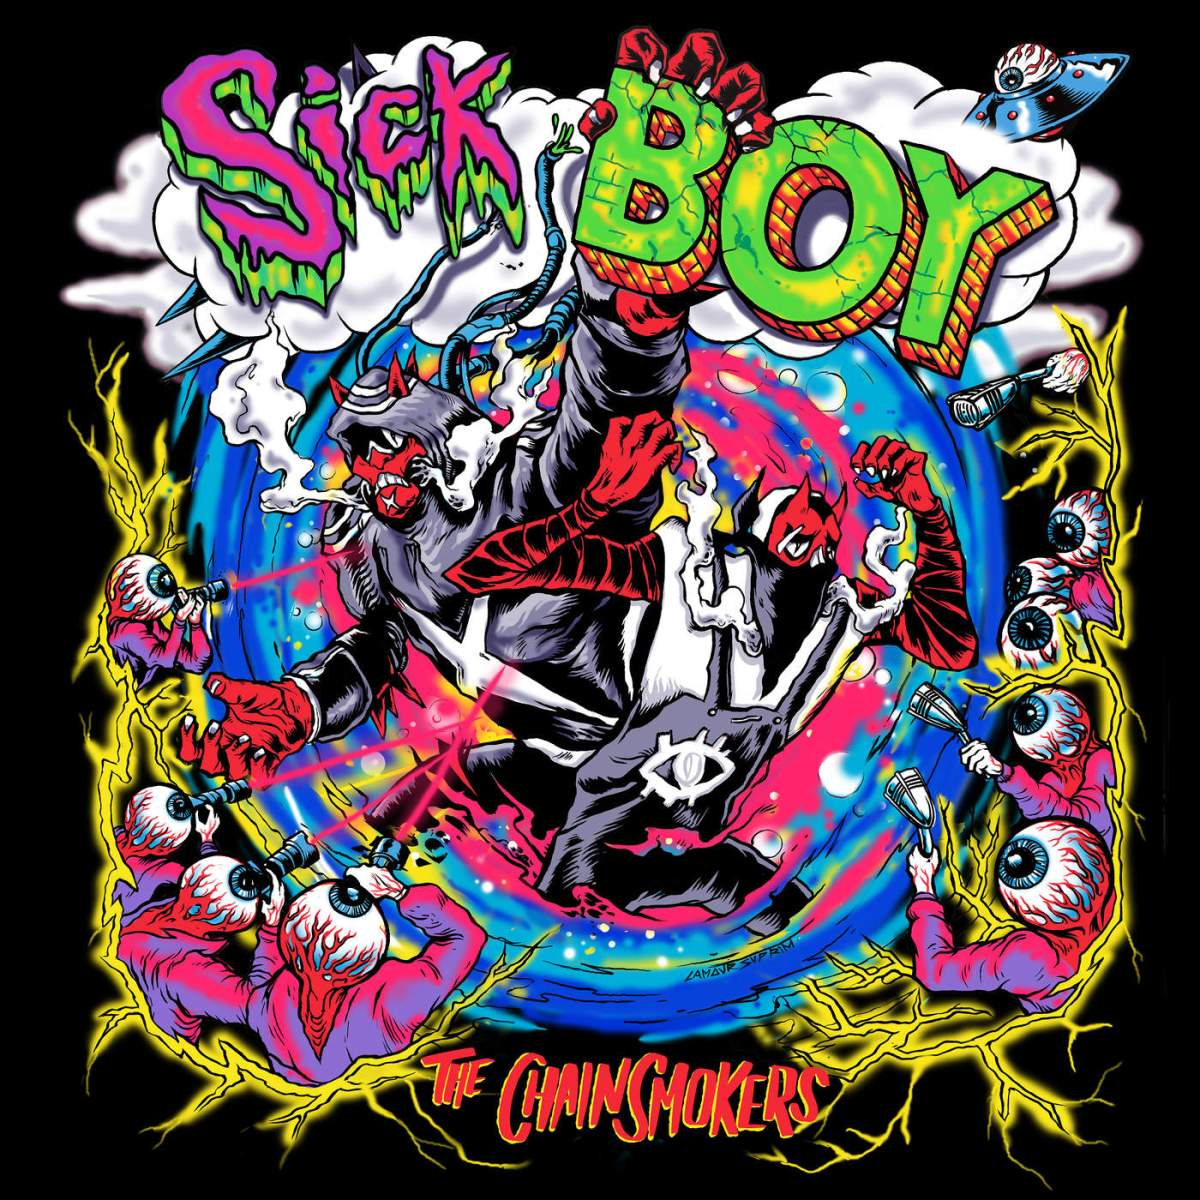 The Chainsmokers implode on bizarre new track 'Sick Boy' - Review